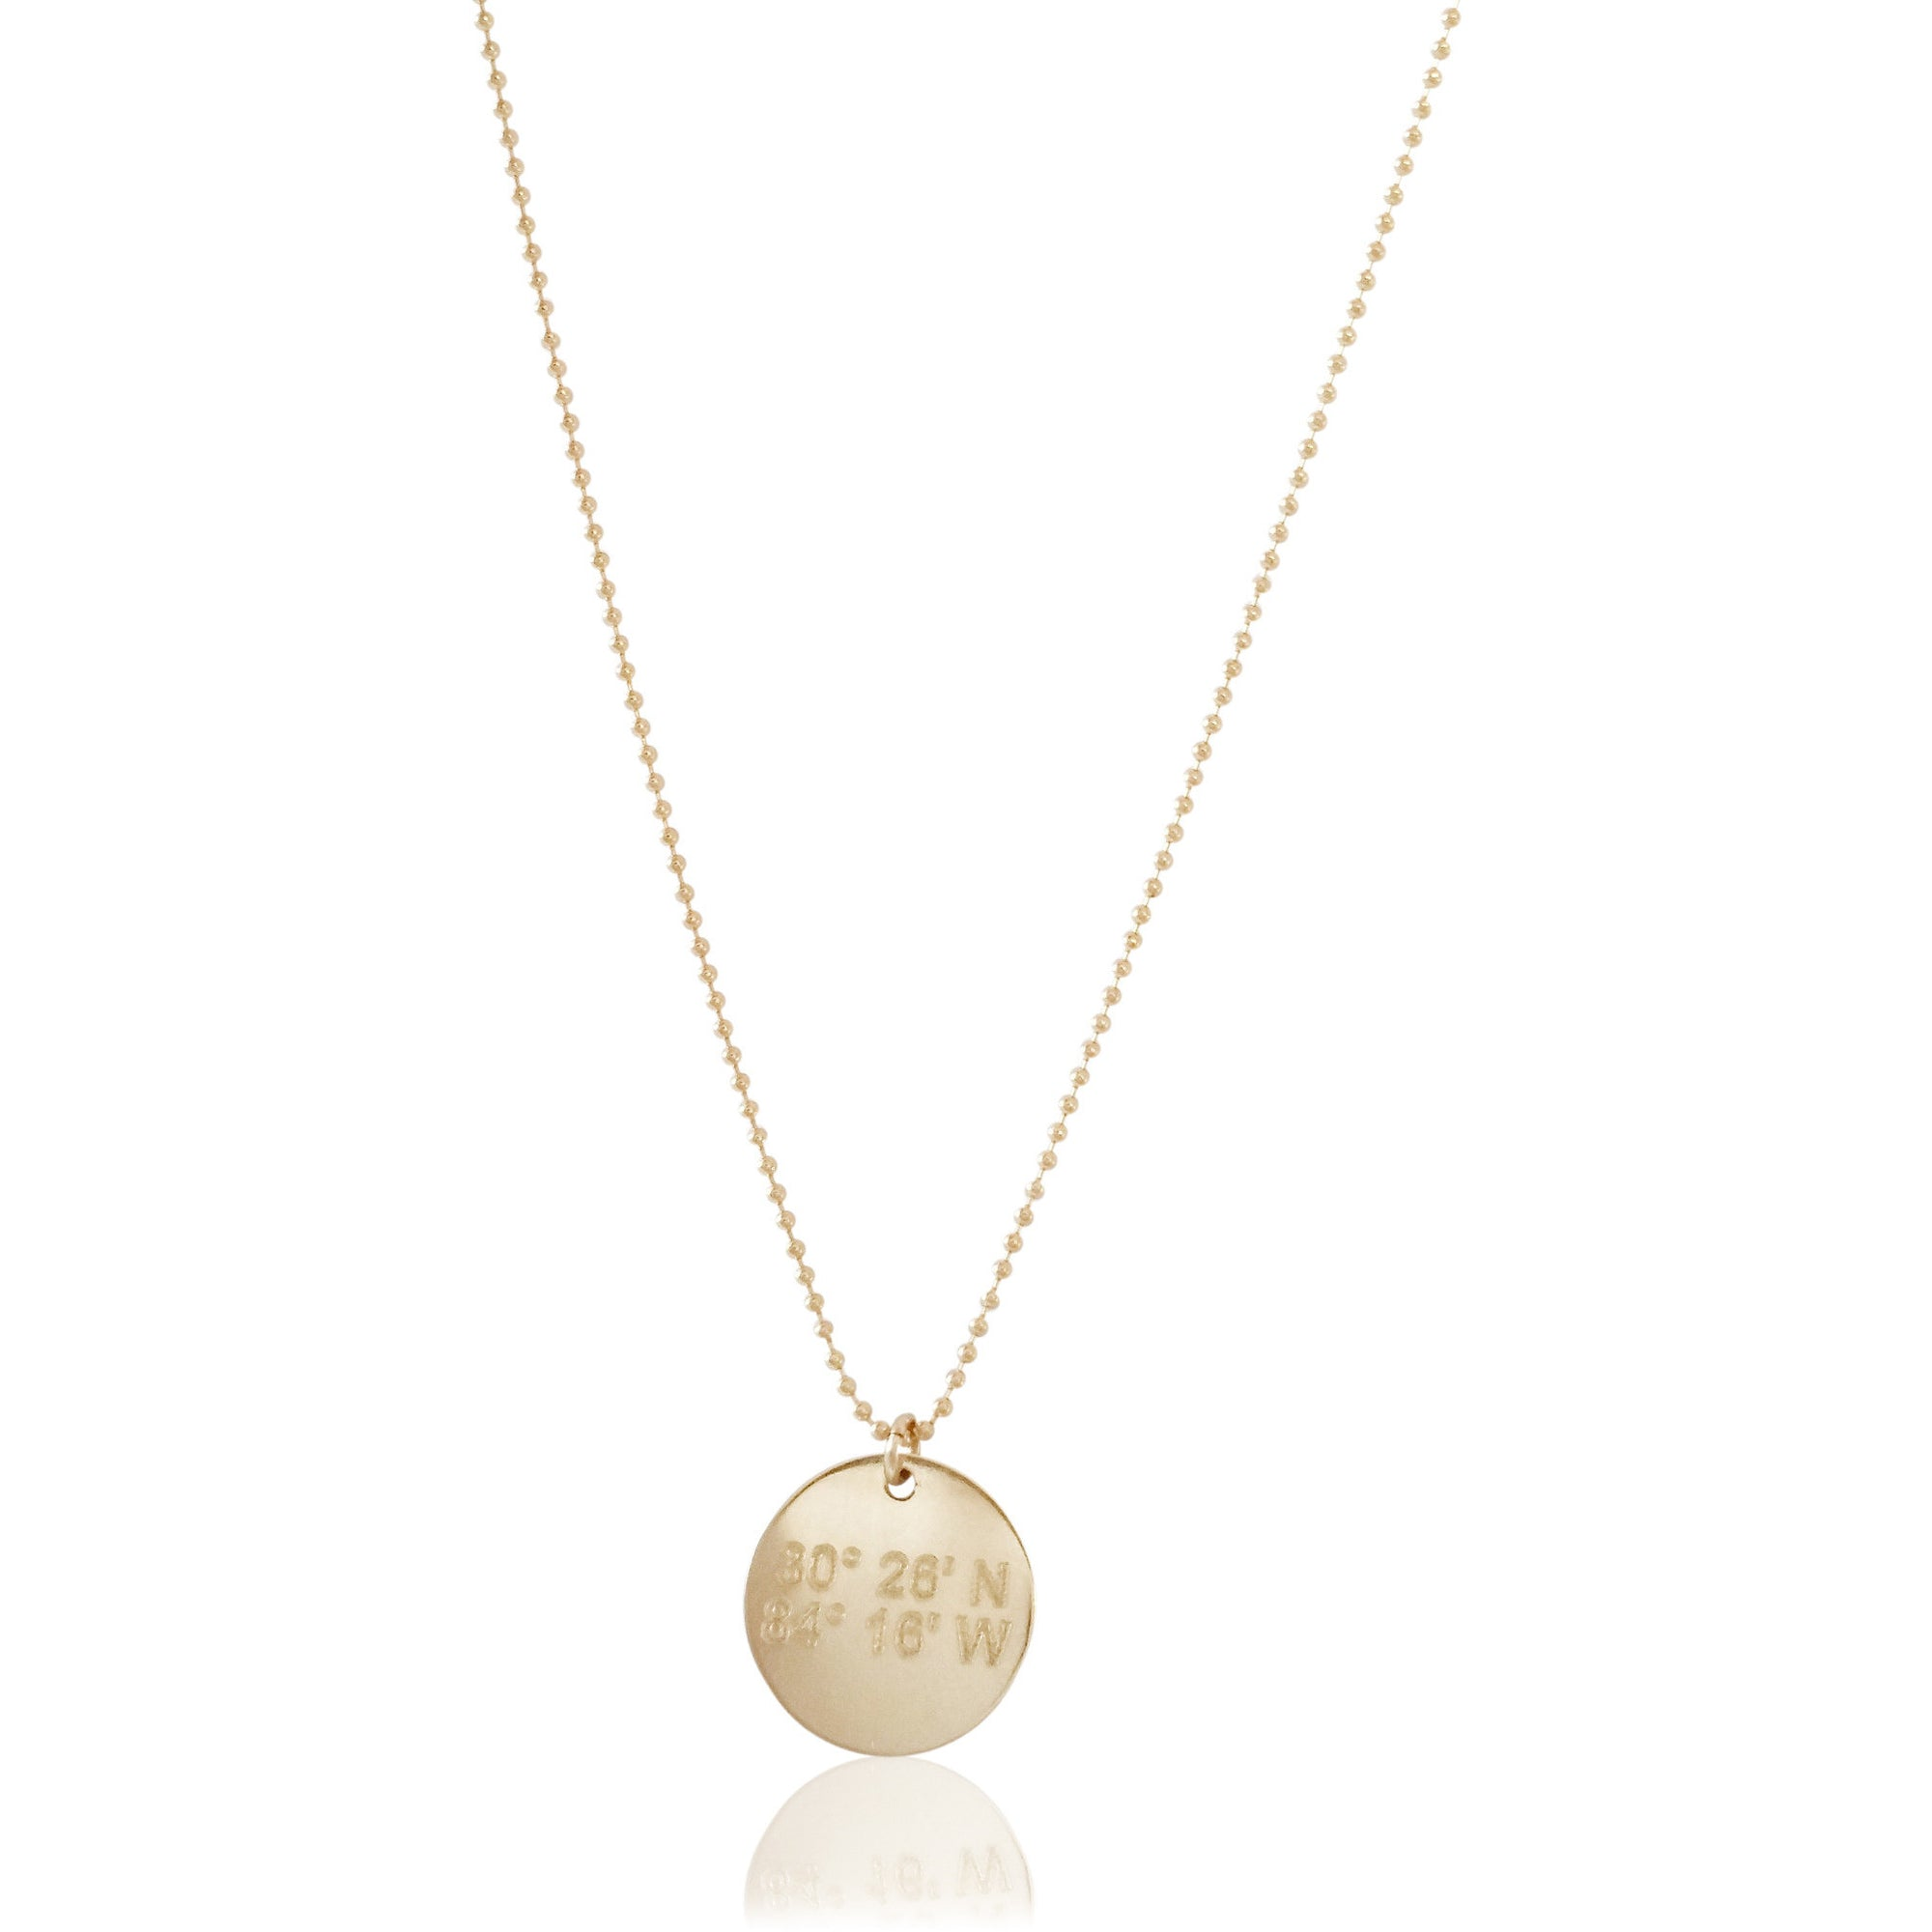 Atlantic Necklace - Lat & Lo™, 13mm charm on beaded chain, 14K gold filled or sterling silver